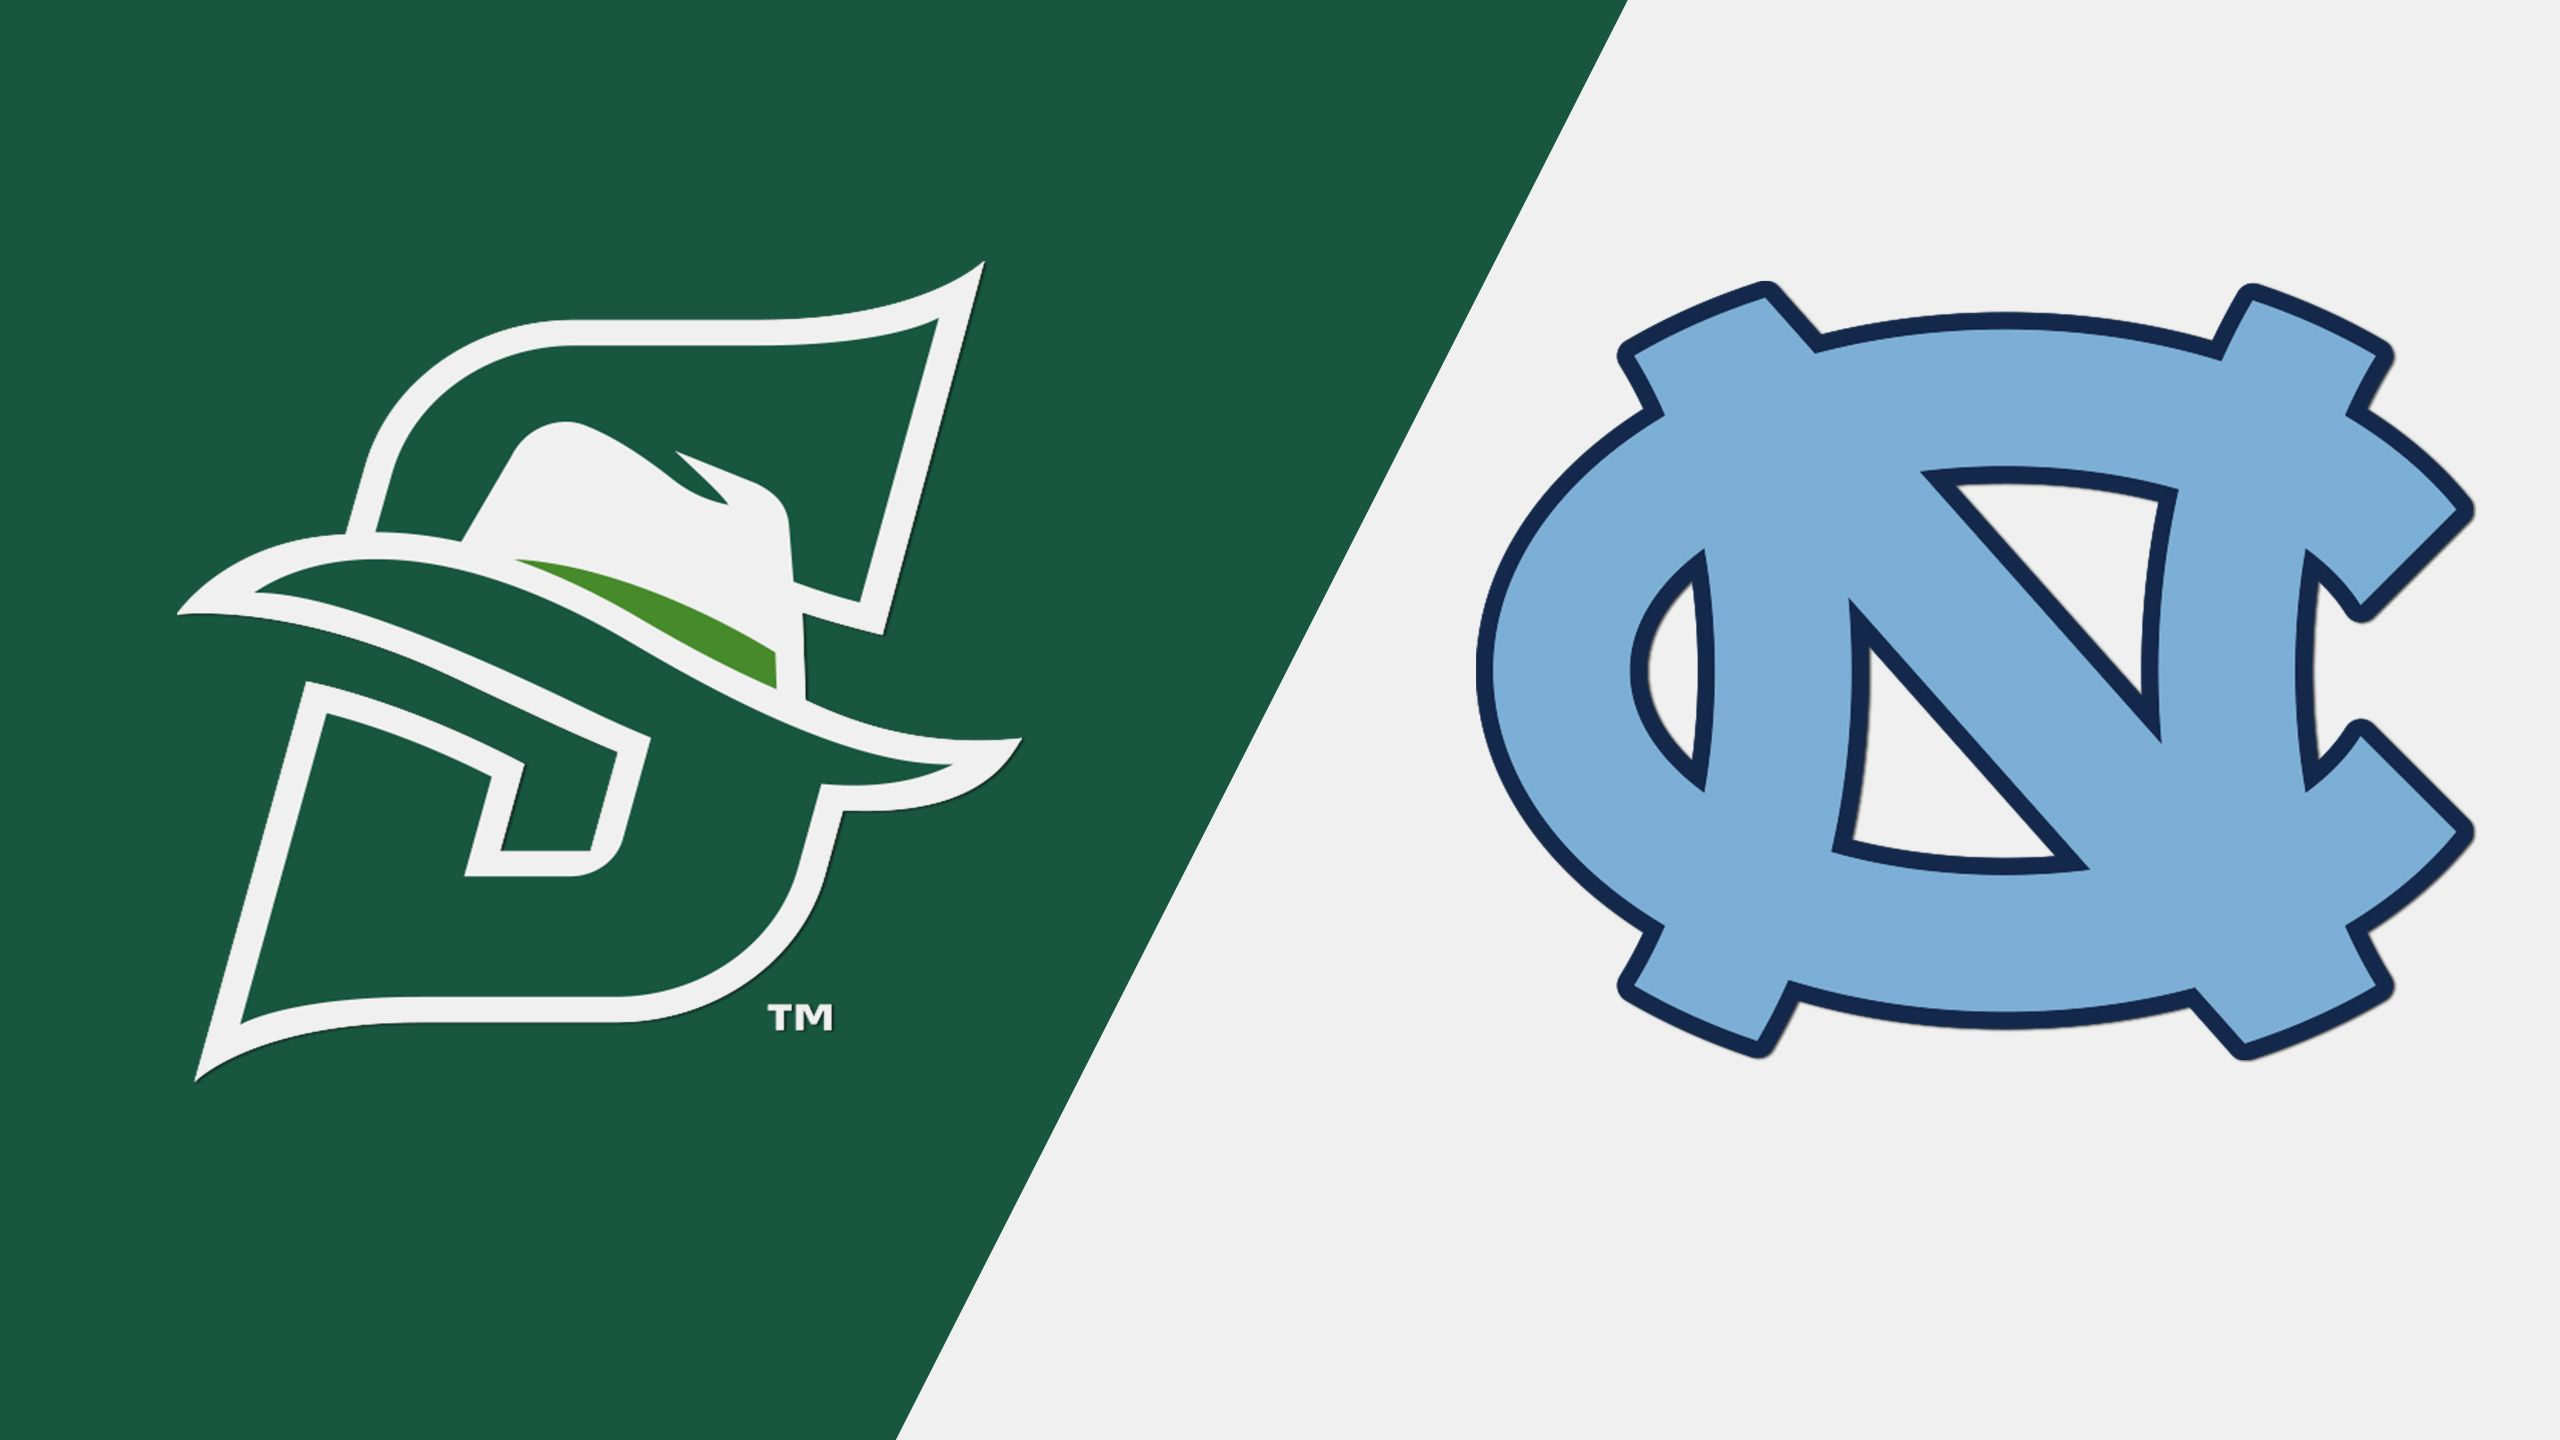 #11 Stetson vs. #6 North Carolina (Site 6 / Game 1) (NCAA Baseball Championship)